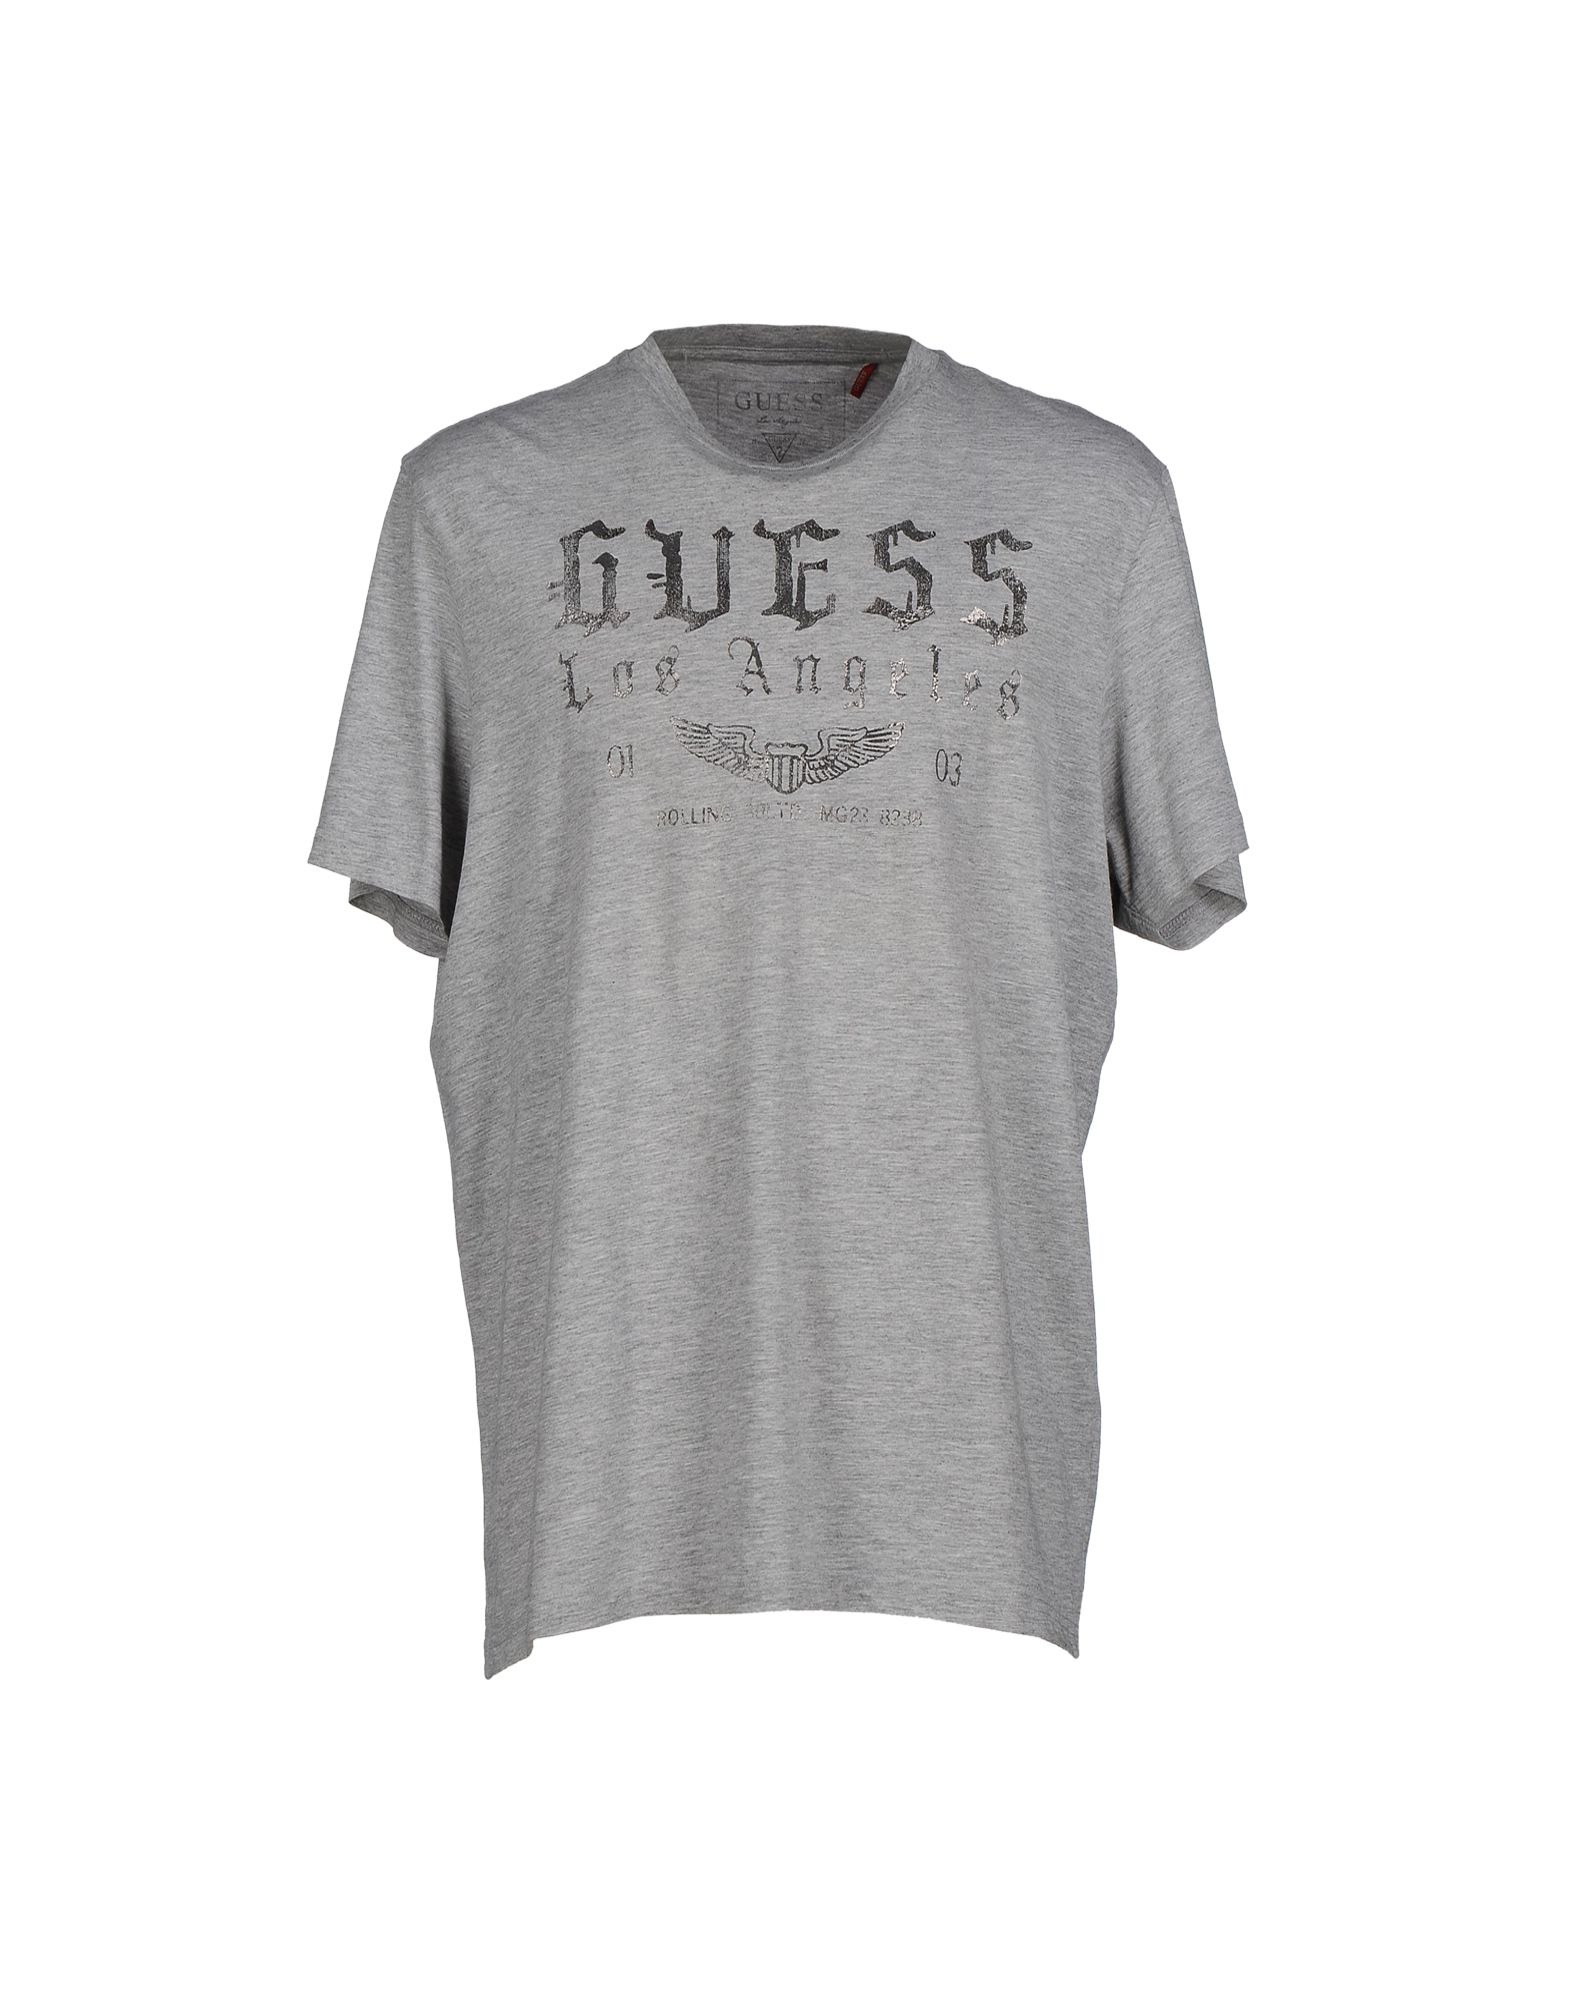 lyst guess t shirt in gray for men. Black Bedroom Furniture Sets. Home Design Ideas